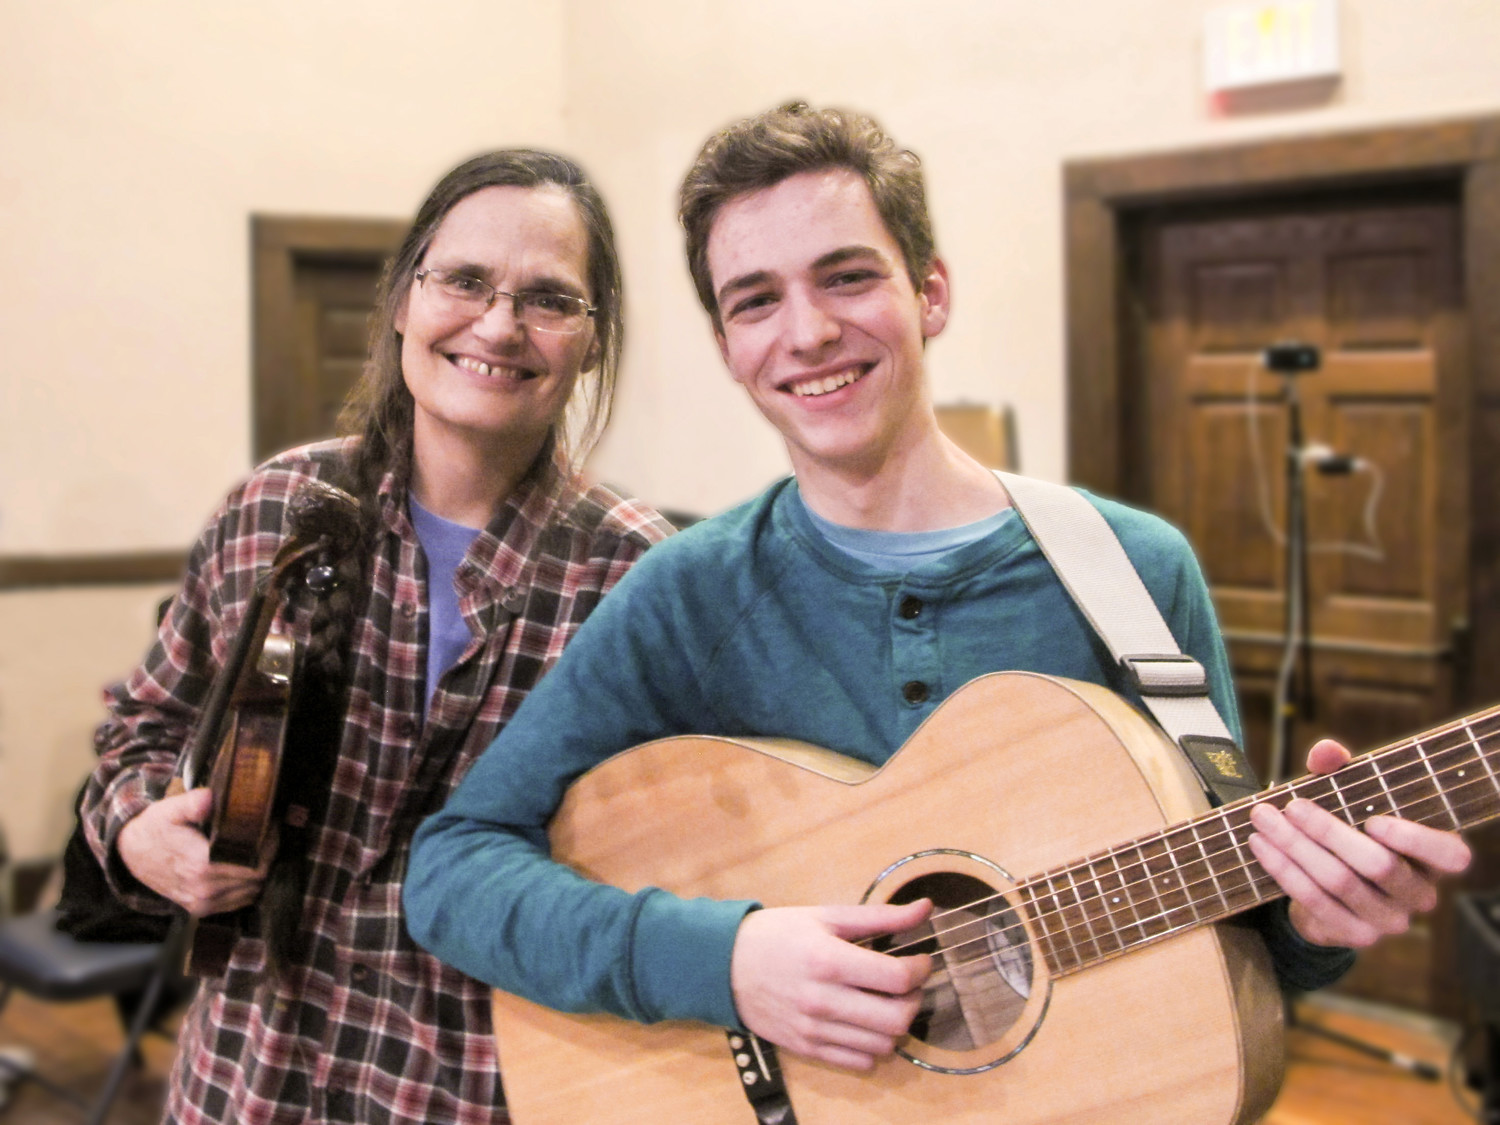 Amy Larkin and Benjamin Foss perform at the Rehoboth contra dance on Friday, January 12